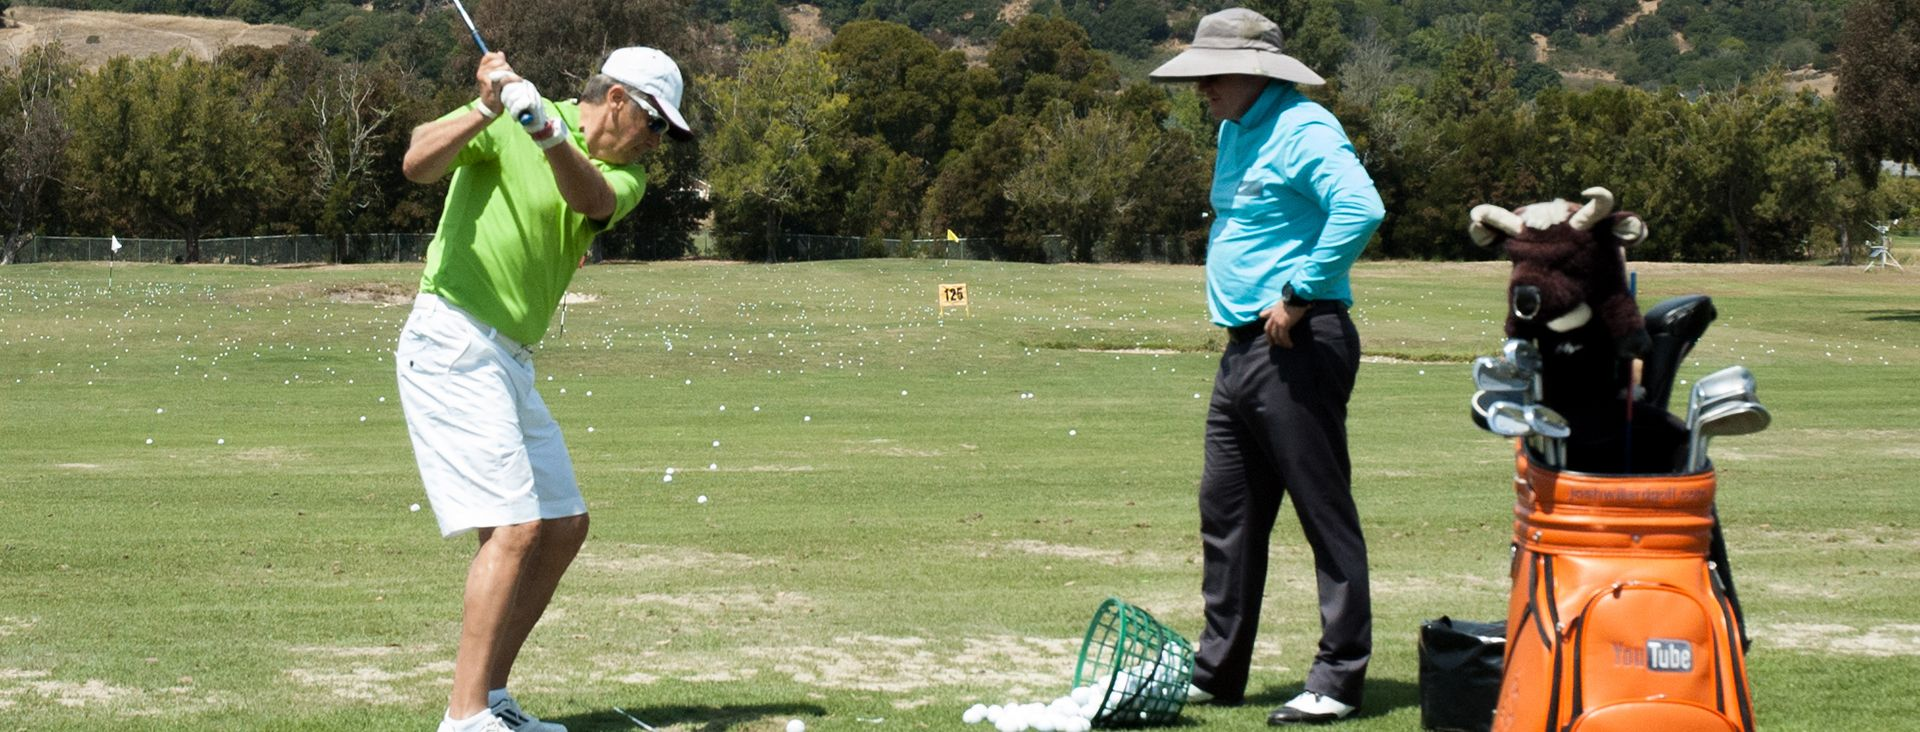 Golf instruction, east bay area, junior golf